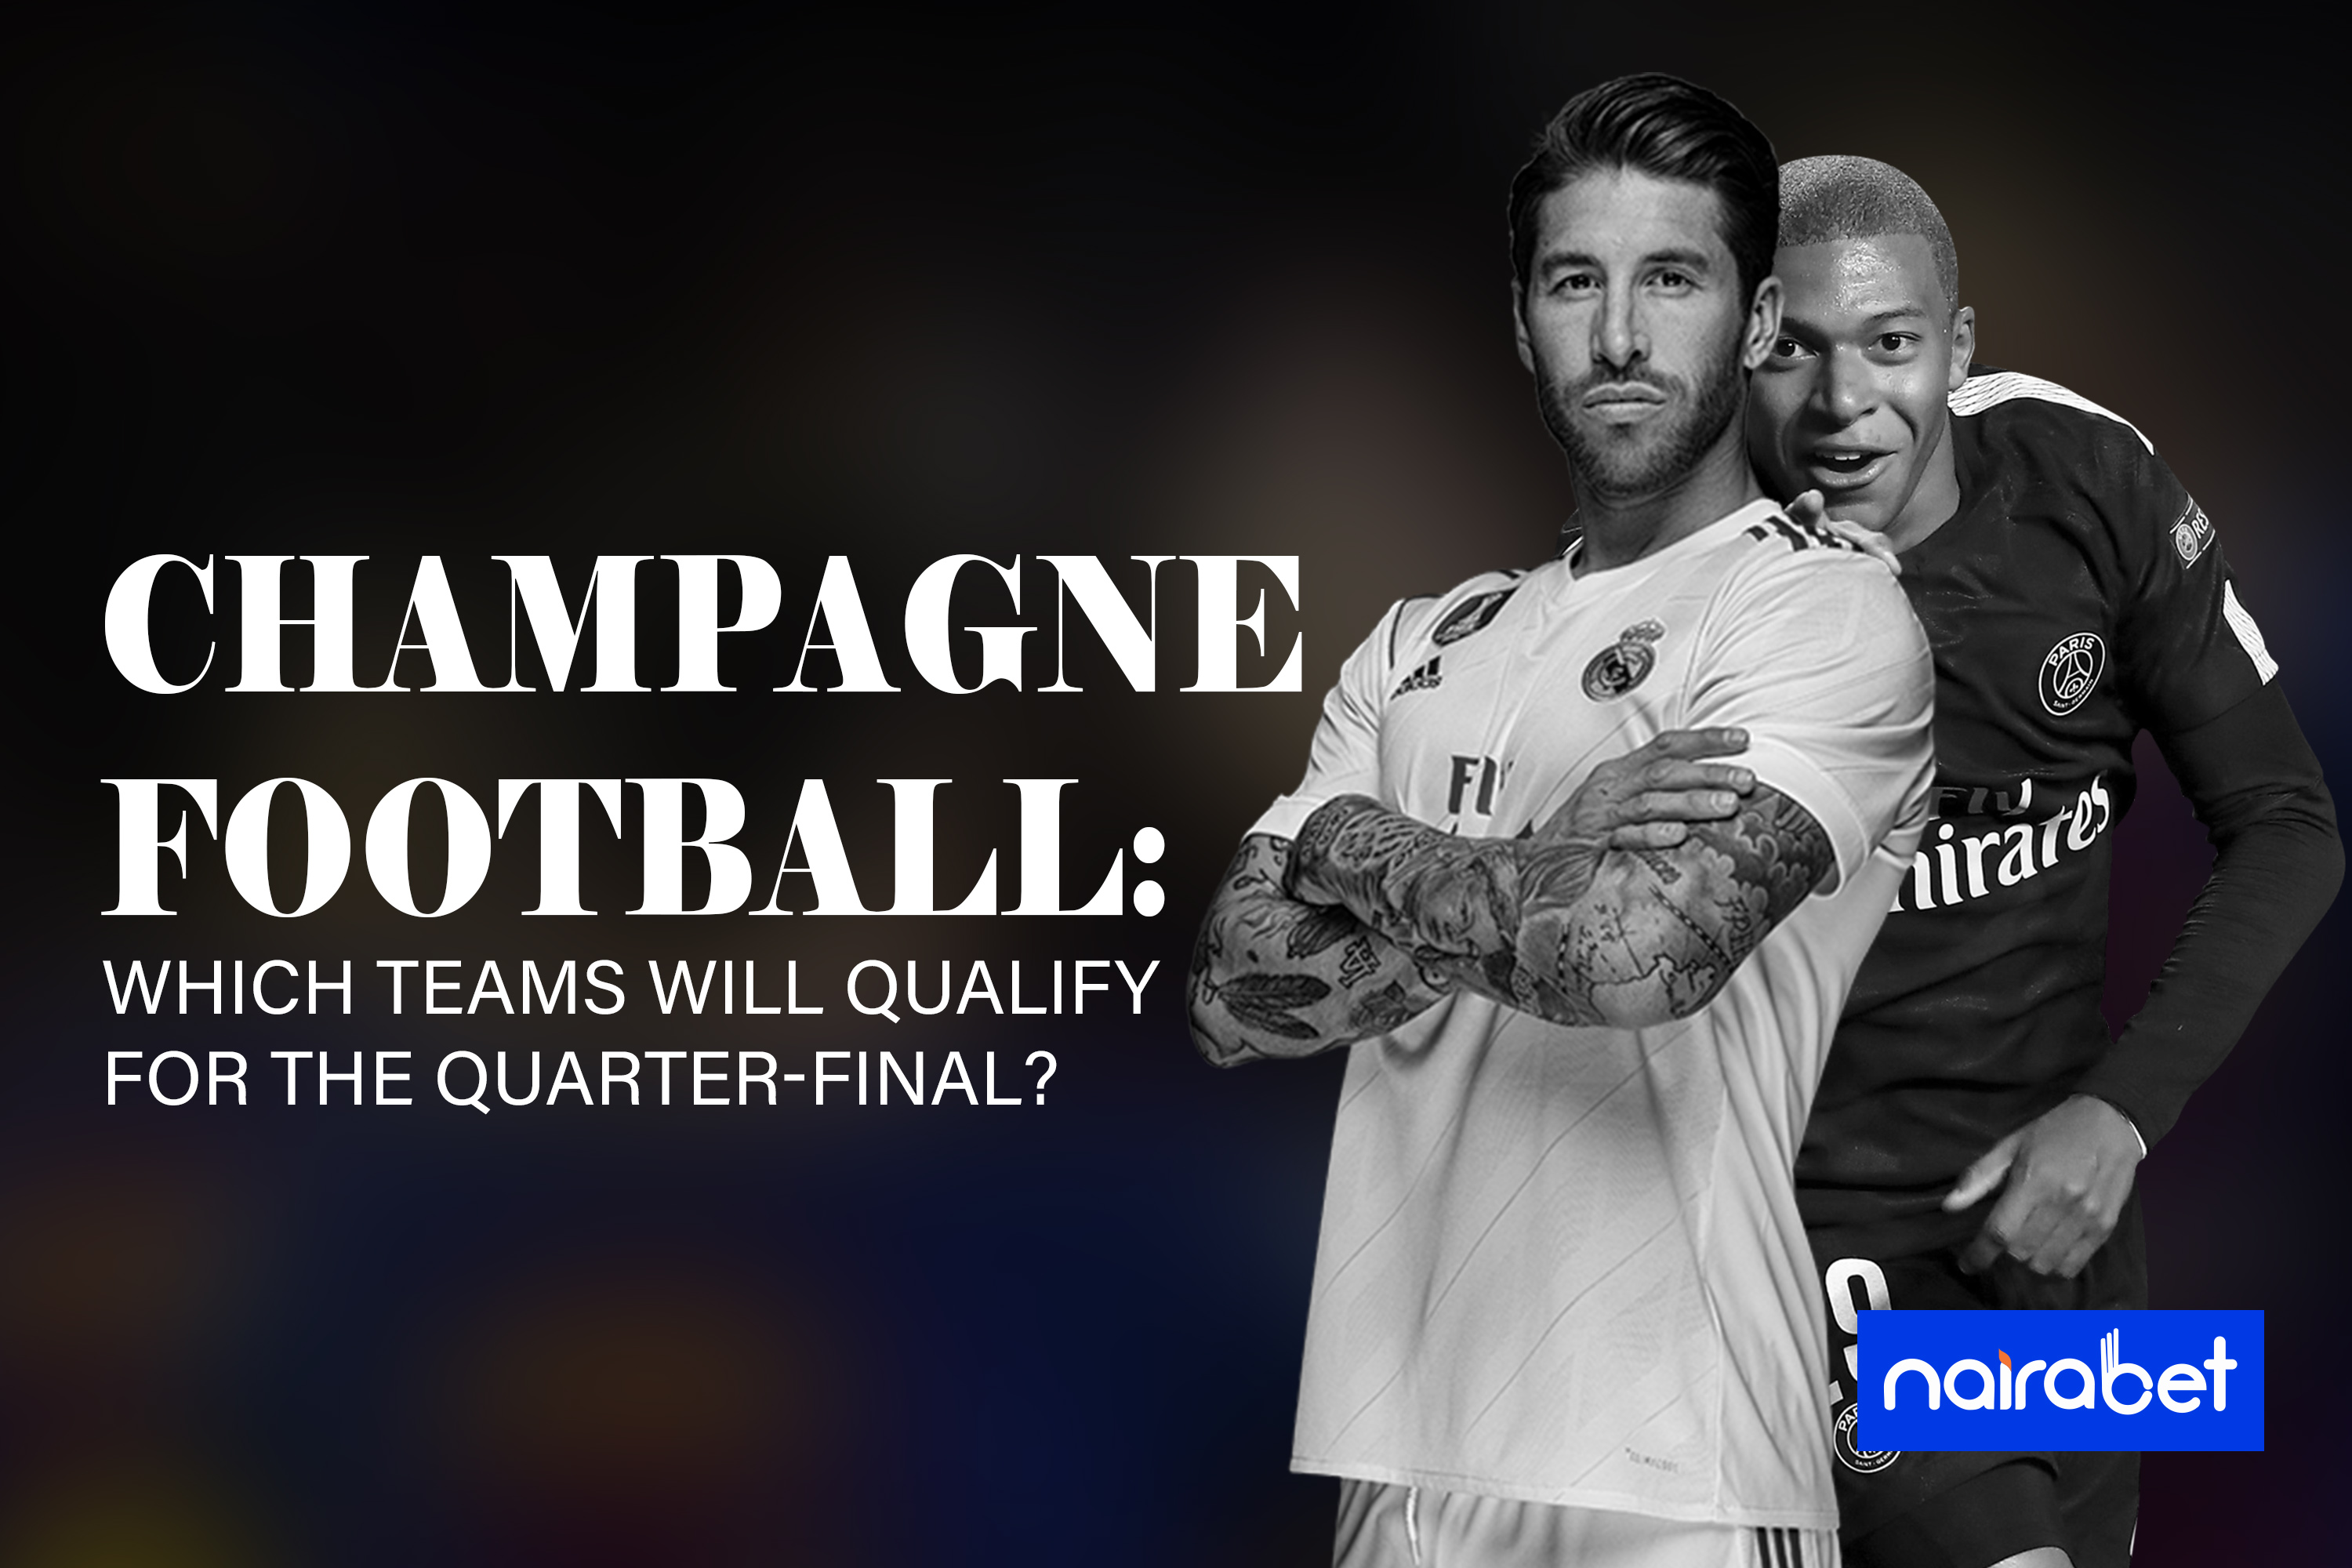 champagne football quarter final